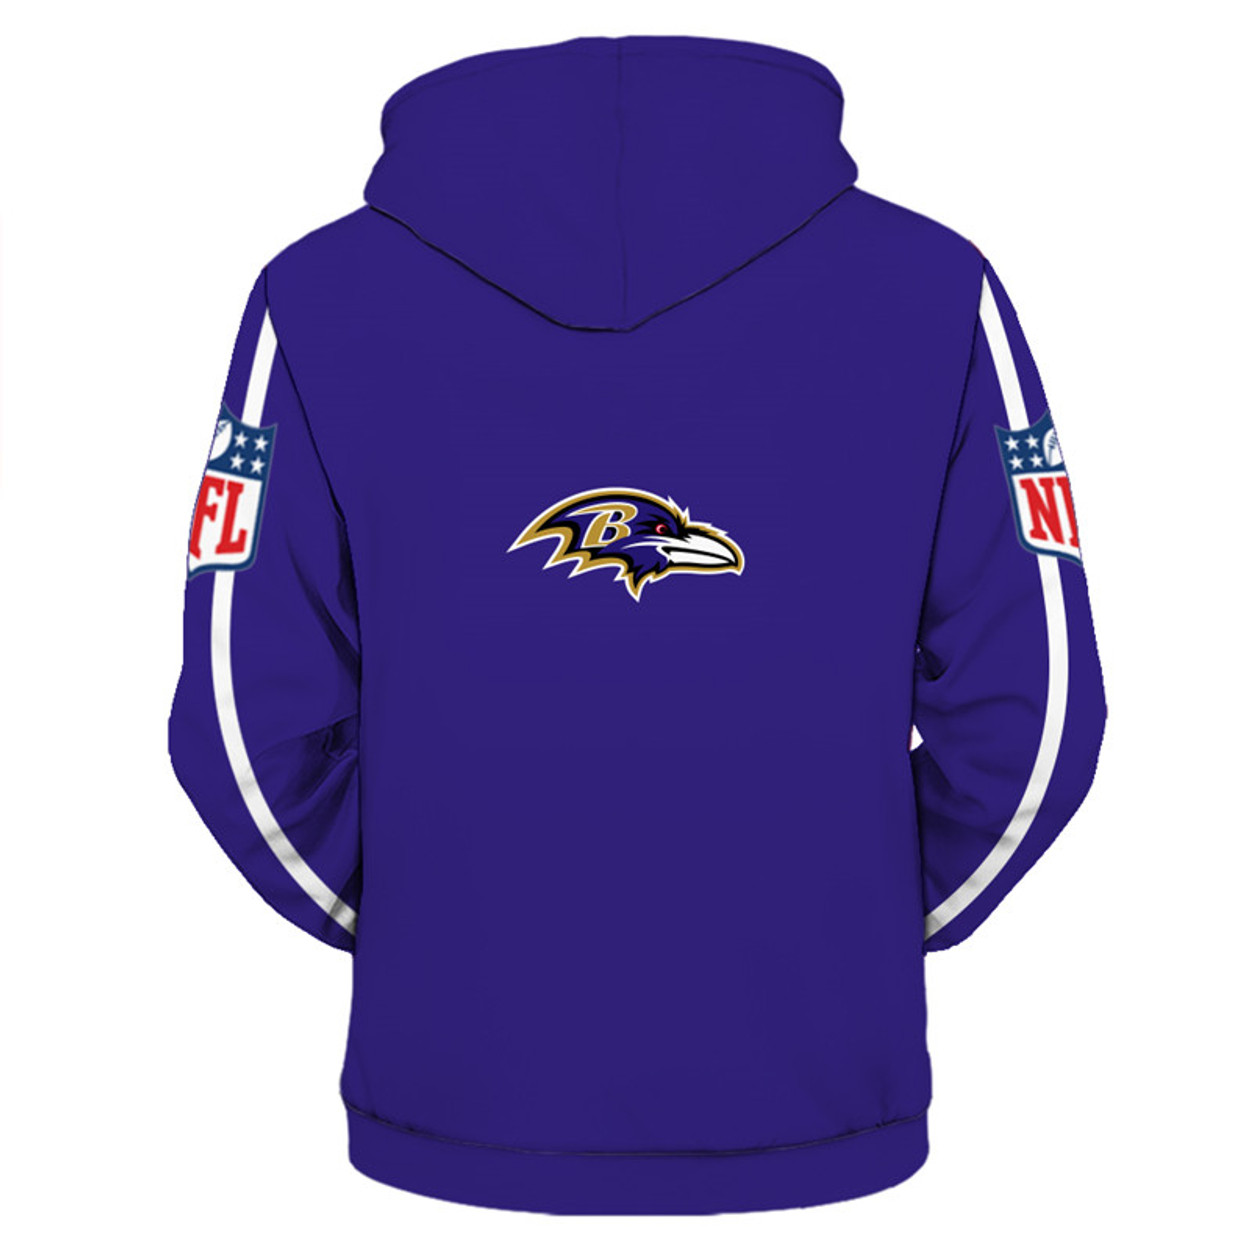 bd3d2995745   (OFFICIALLY-LICENSED-N.F.L.BALTIMORE-RAVENS-TRENDY-PULLOVER-TEAM-HOODIES  NICE-CUSTOM-3D-GRAPHIC-PRINTED-DOUBLE-SIDED-ALL-OVER-OFFICIAL-RAVENS-LOGOS  ...